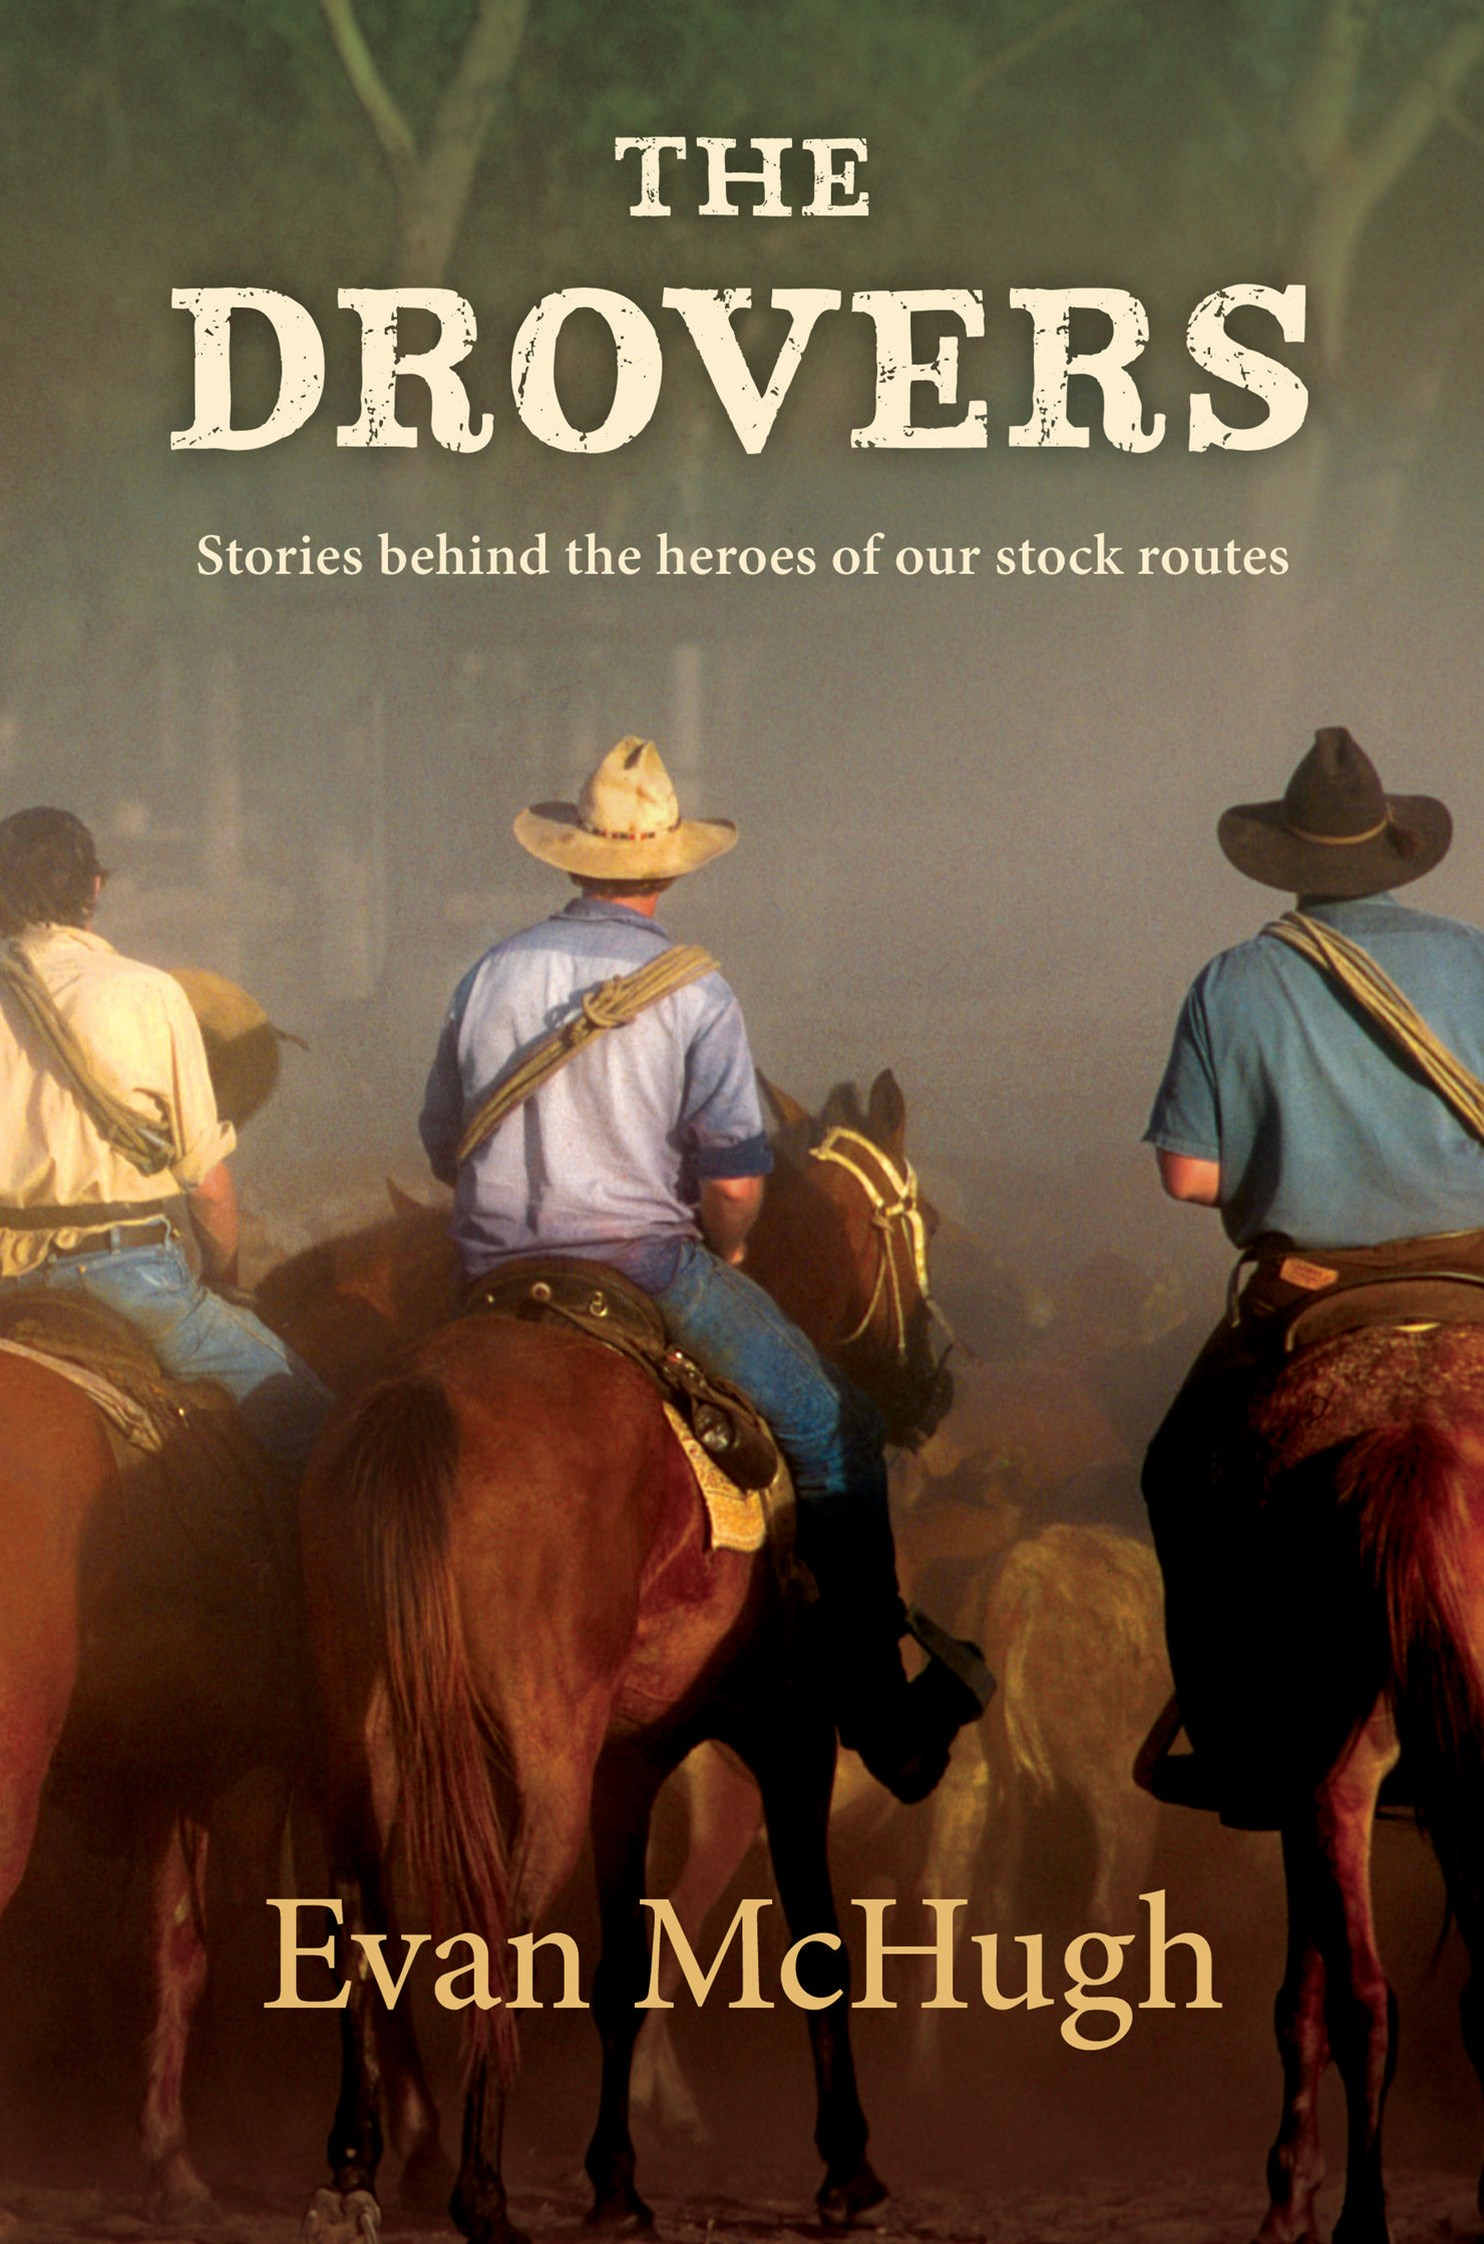 The Drovers: Stories behind the heroes of our stock routes